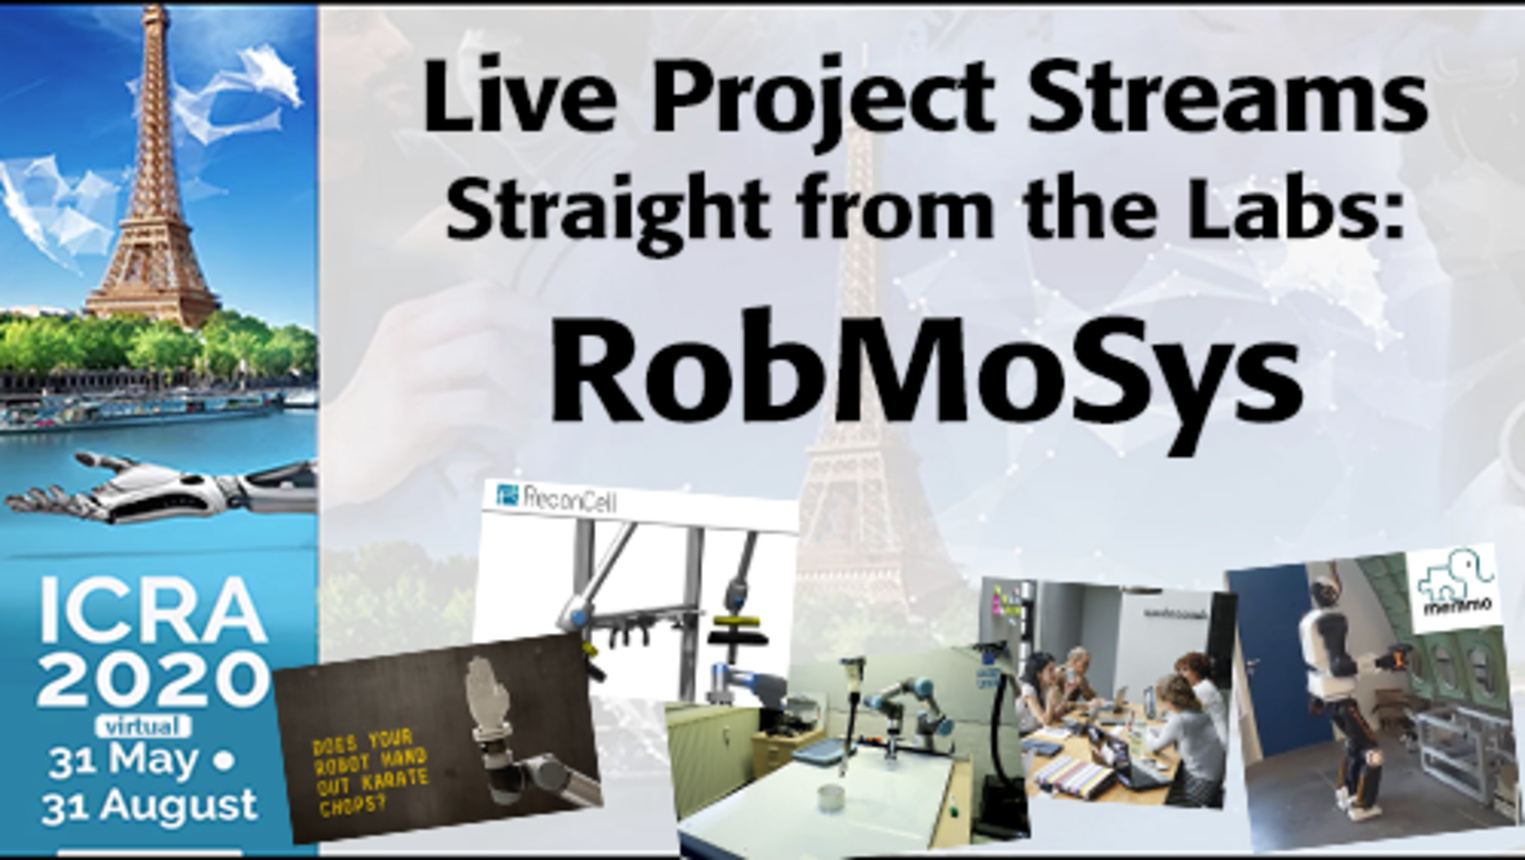 ICRA 2020-Live Project Demo: RobMoSys